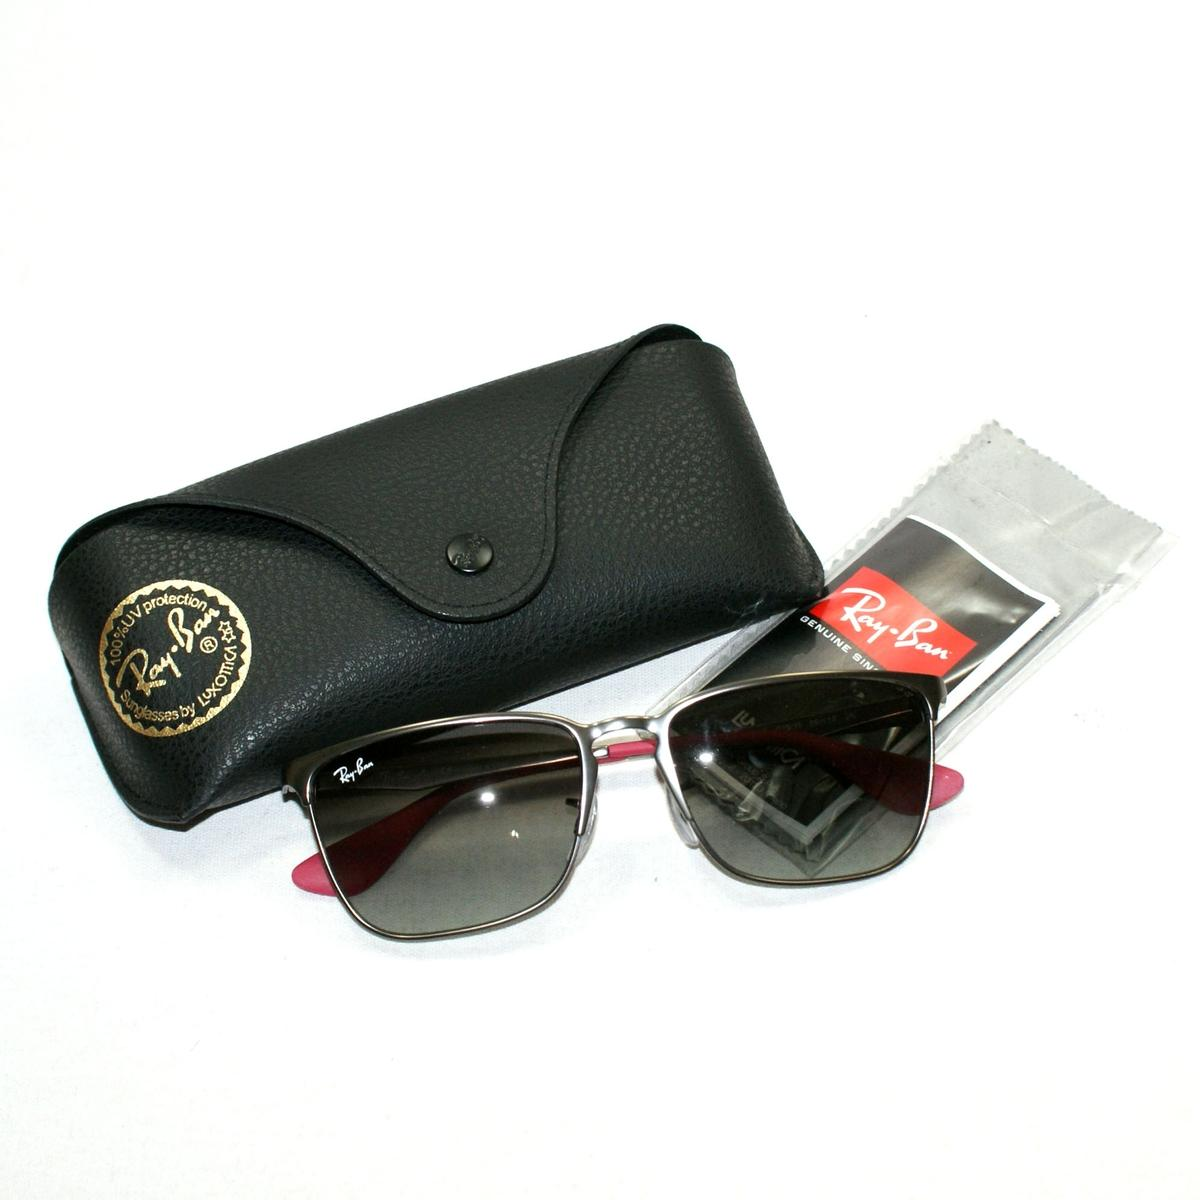 a266e2b0f24 Home · Ray Ban · Clubmaster Aluminum Polarized P3 Plus Lens Sunglasses.  CLICK THUMBNAIL TO ZOOM. Found ...